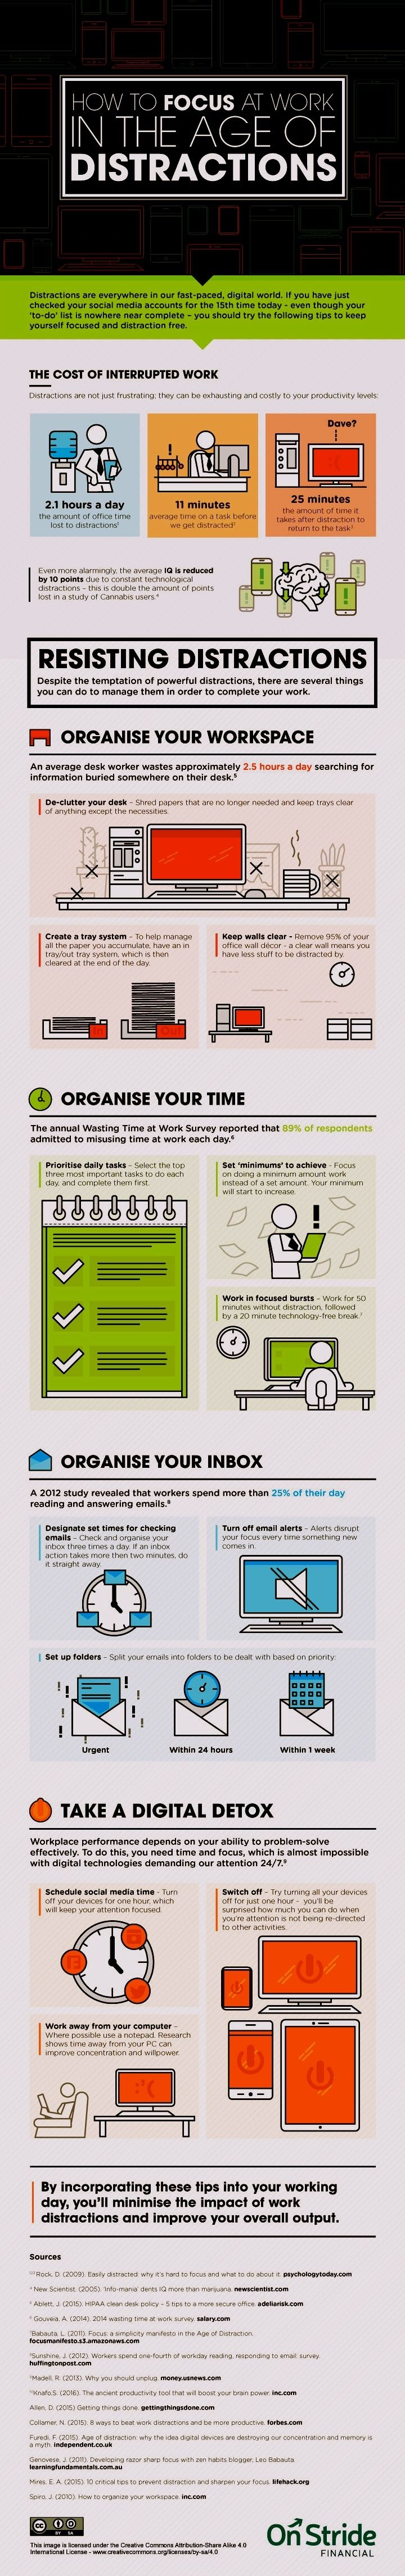 How to Stay Focused in the Age of Distractions [Infographic] . Organize your workspace. Organize your time. Organize your inbox. Take a digital detox.